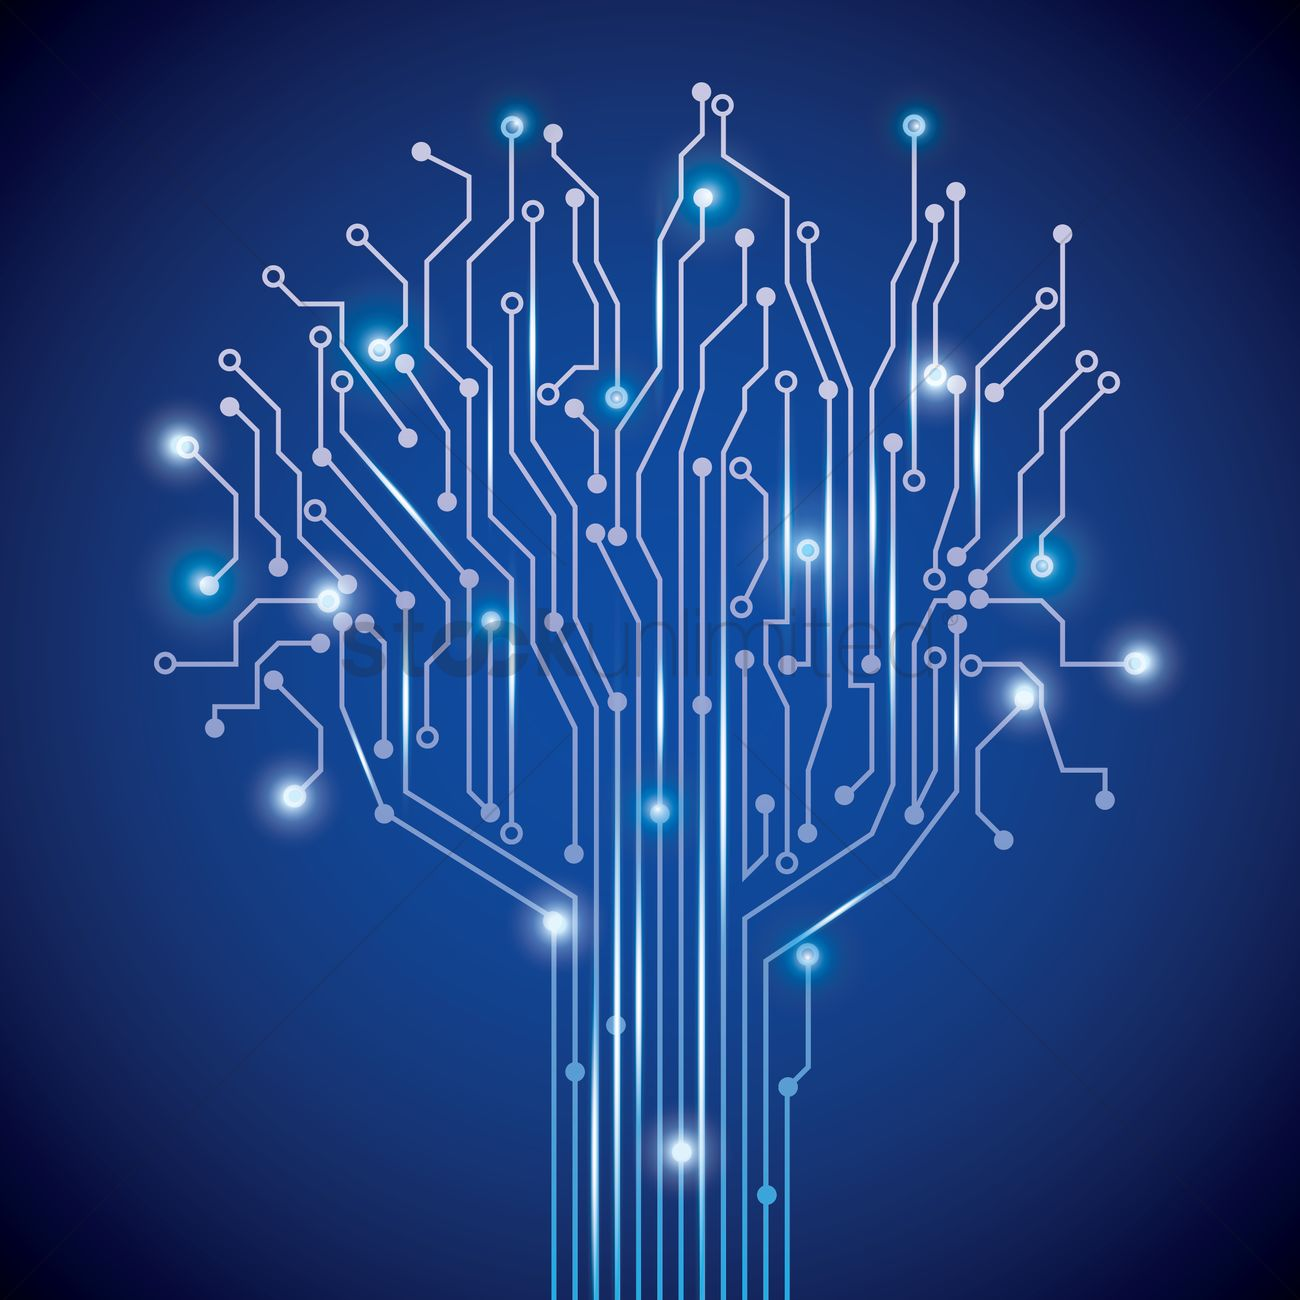 Tree Design On Circuit Board Wallpaper Vector Image